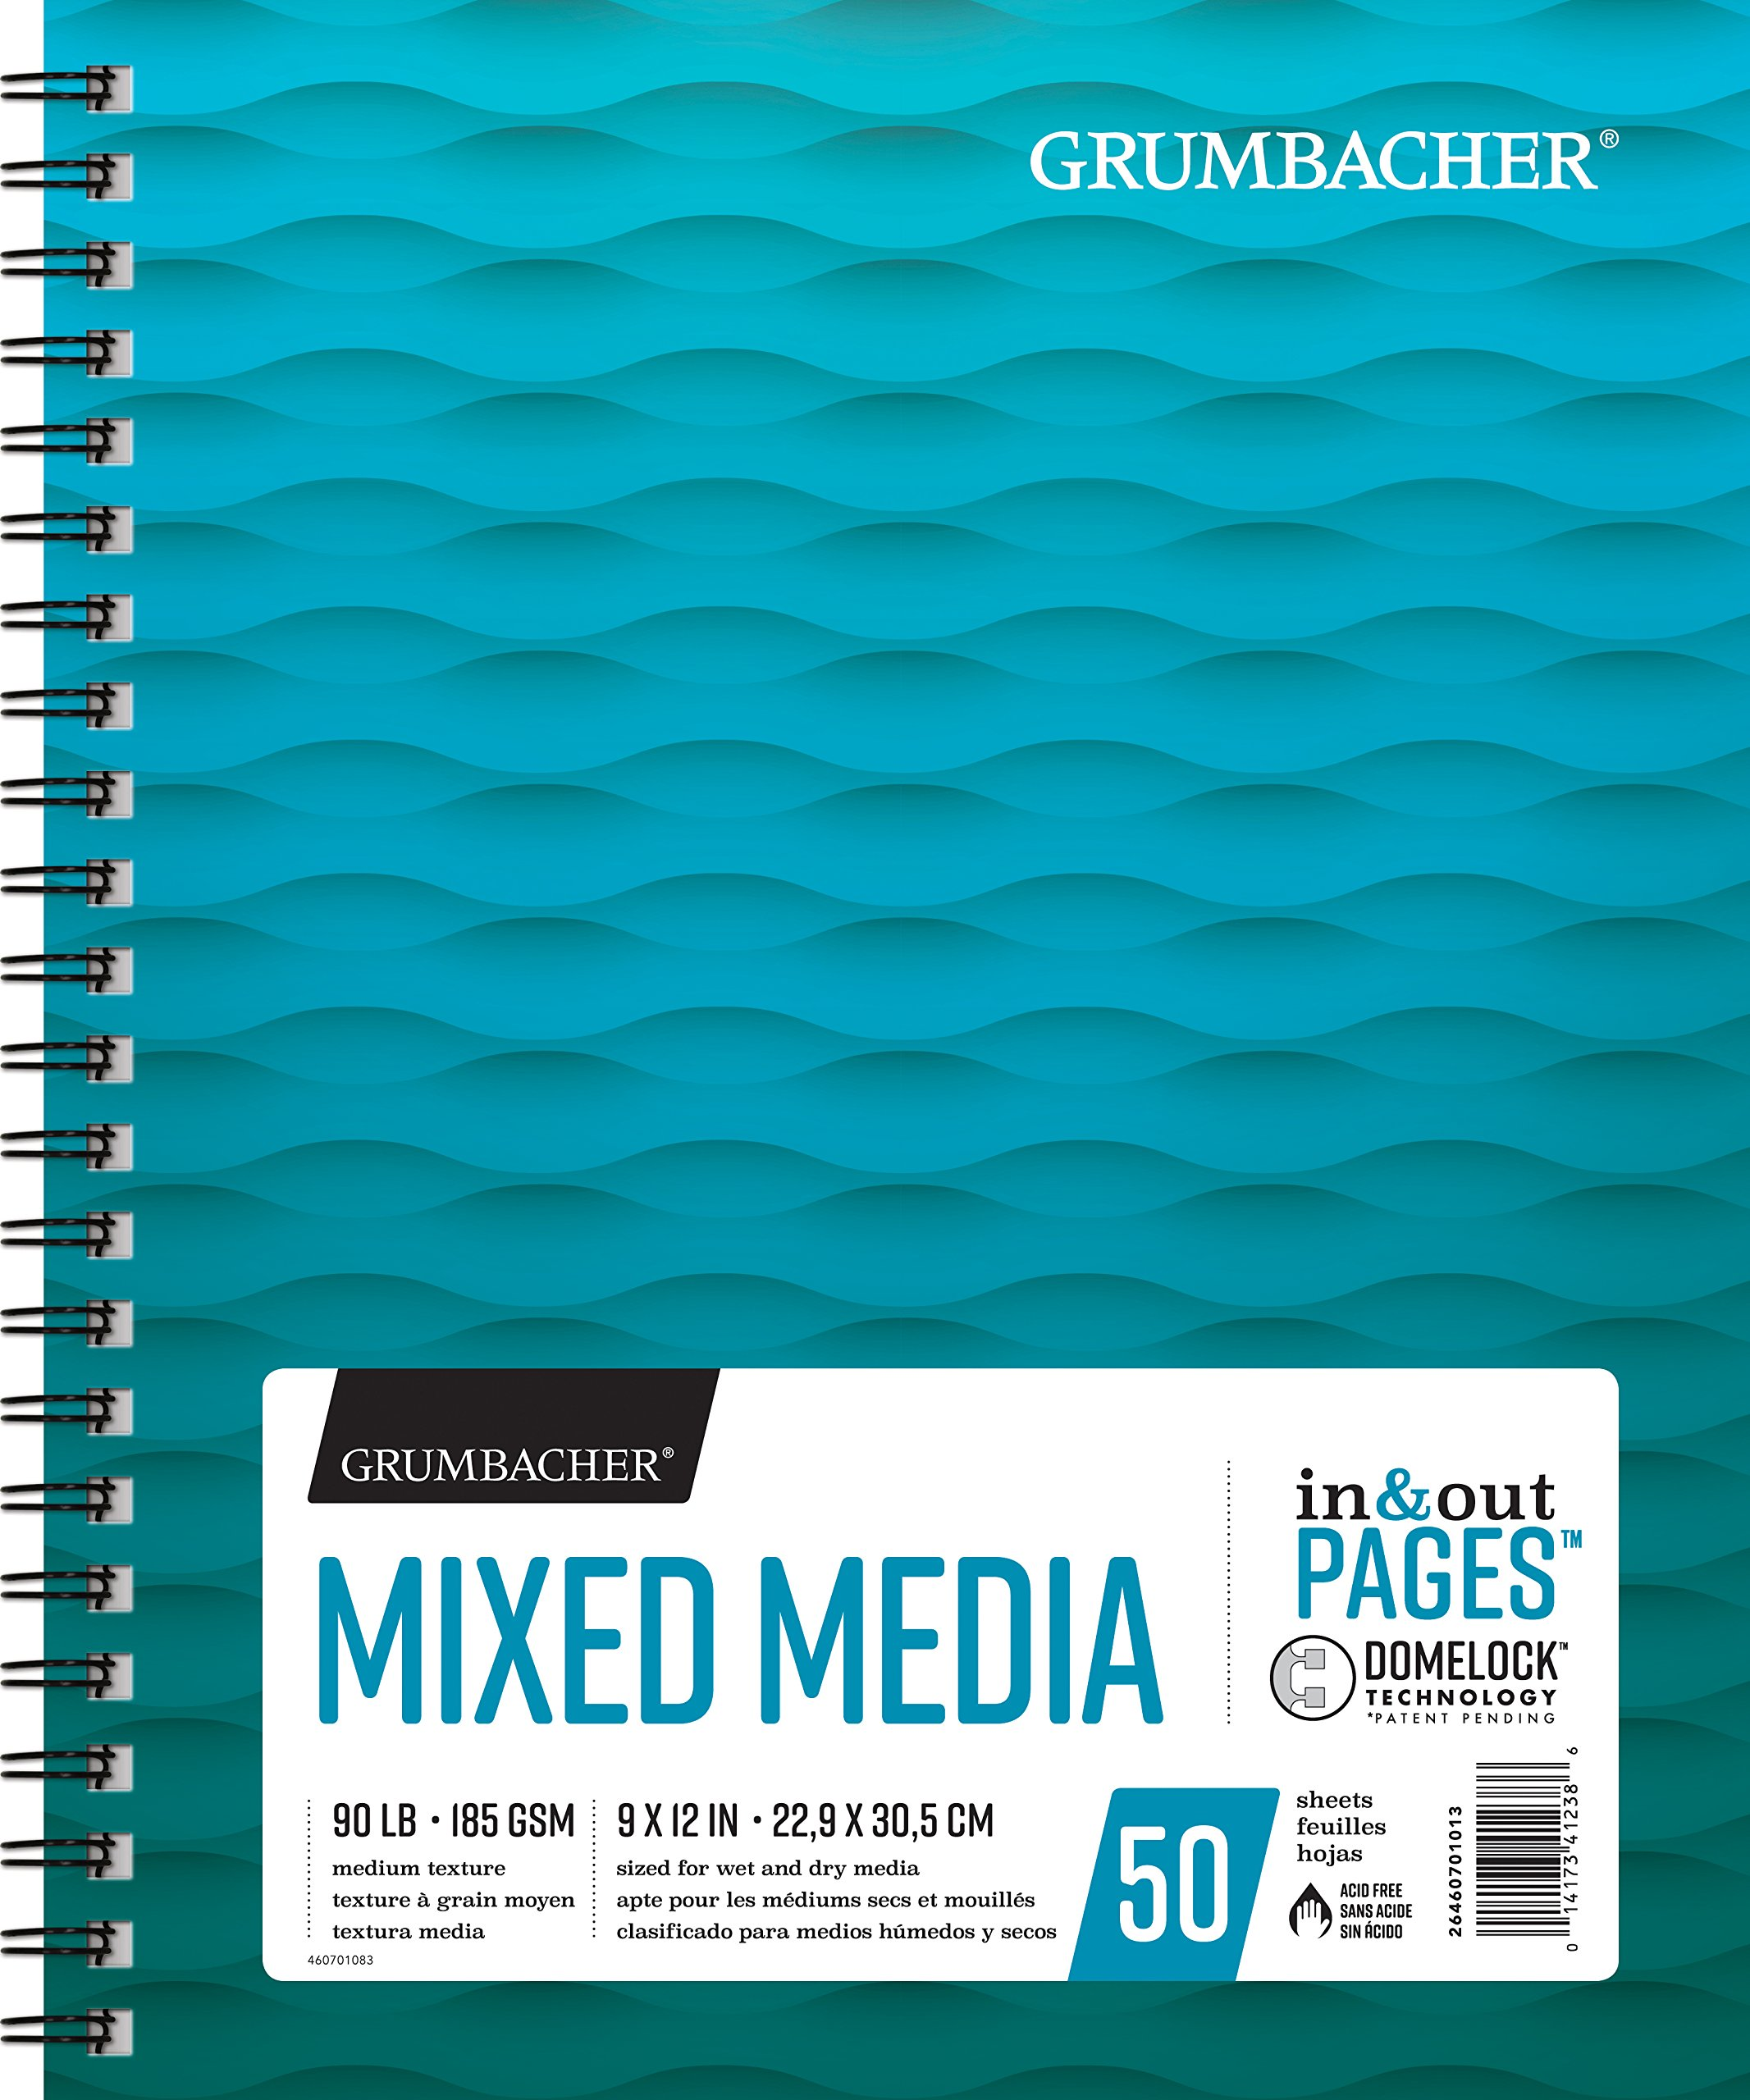 Grumbacher Mixed Media Paper Pad with In & Out Pages, 90 lb. / 185 GSM, 9 x 12 inches, Side Wired, 50 White Sheets/Pad, 1 Each, 26460701013 by GRUMBACHER